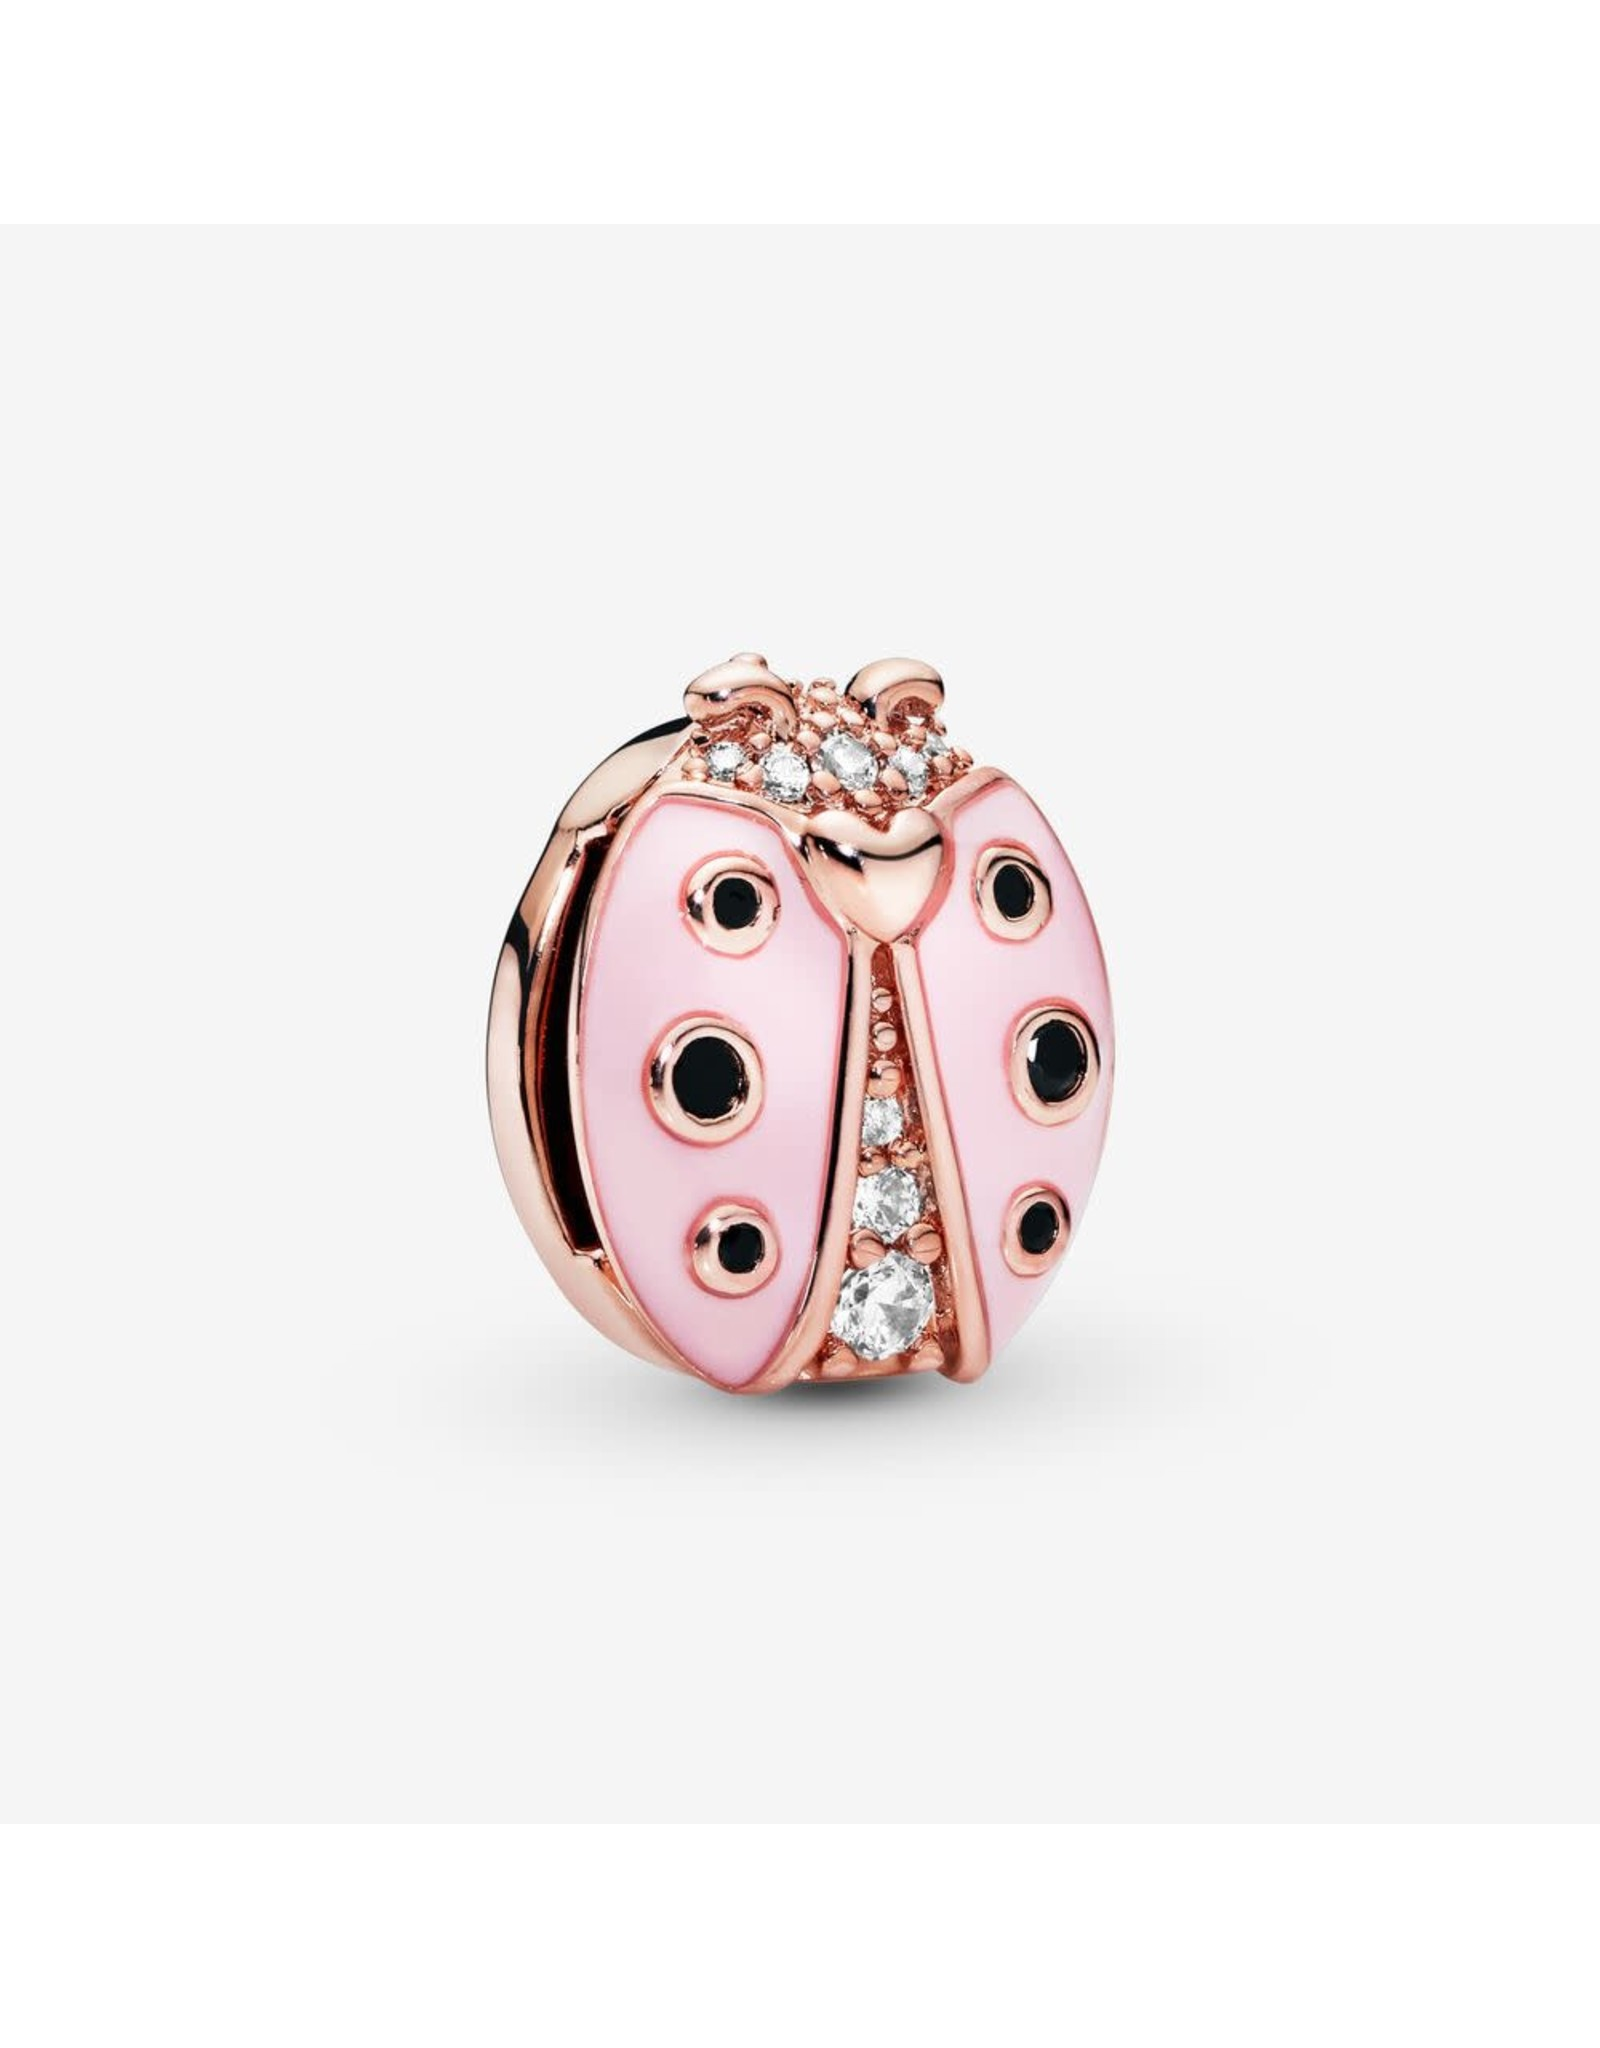 Pandora Pandora Reflexions Ladybird Clip Charm In Rose Gold With 2 Micro And 6 Bead-Set Clear CZ And 6 Bezel-Set Black Crystals And Transparent Pale Pink Enamel